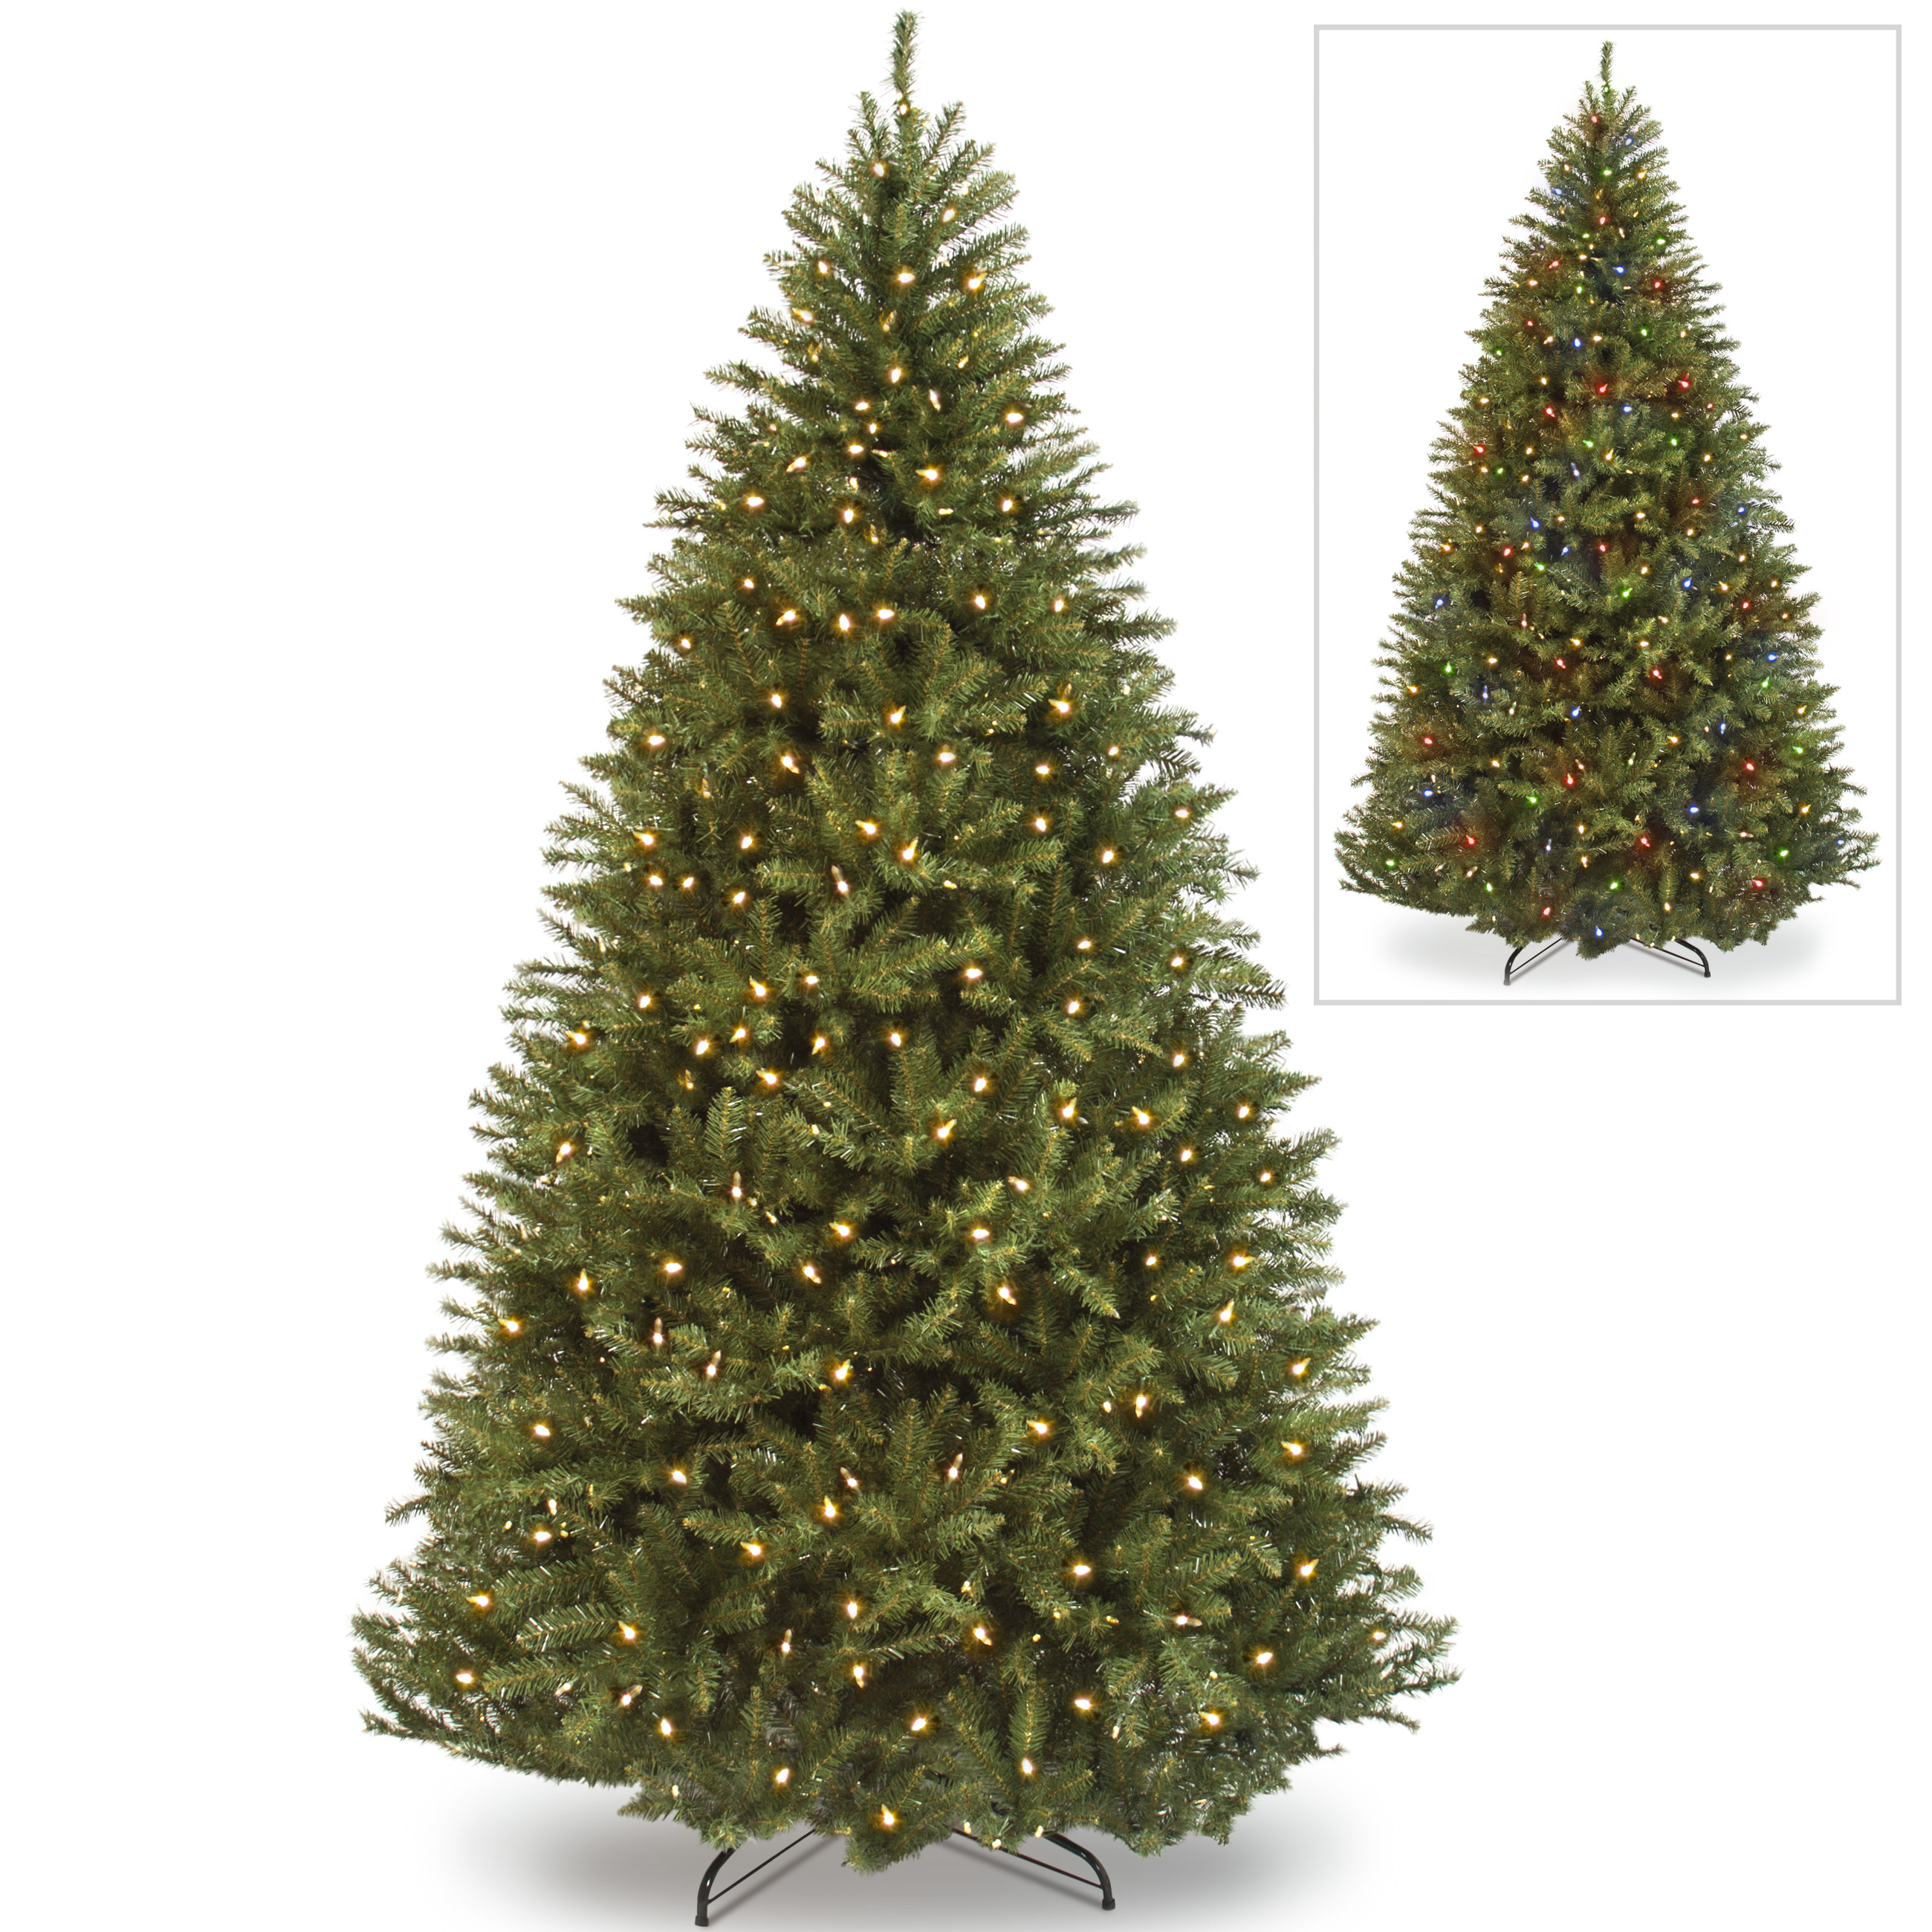 2 Ft White Christmas Tree: Best Choice Products 7.5ft Pre-Lit Fir Hinged Artificial